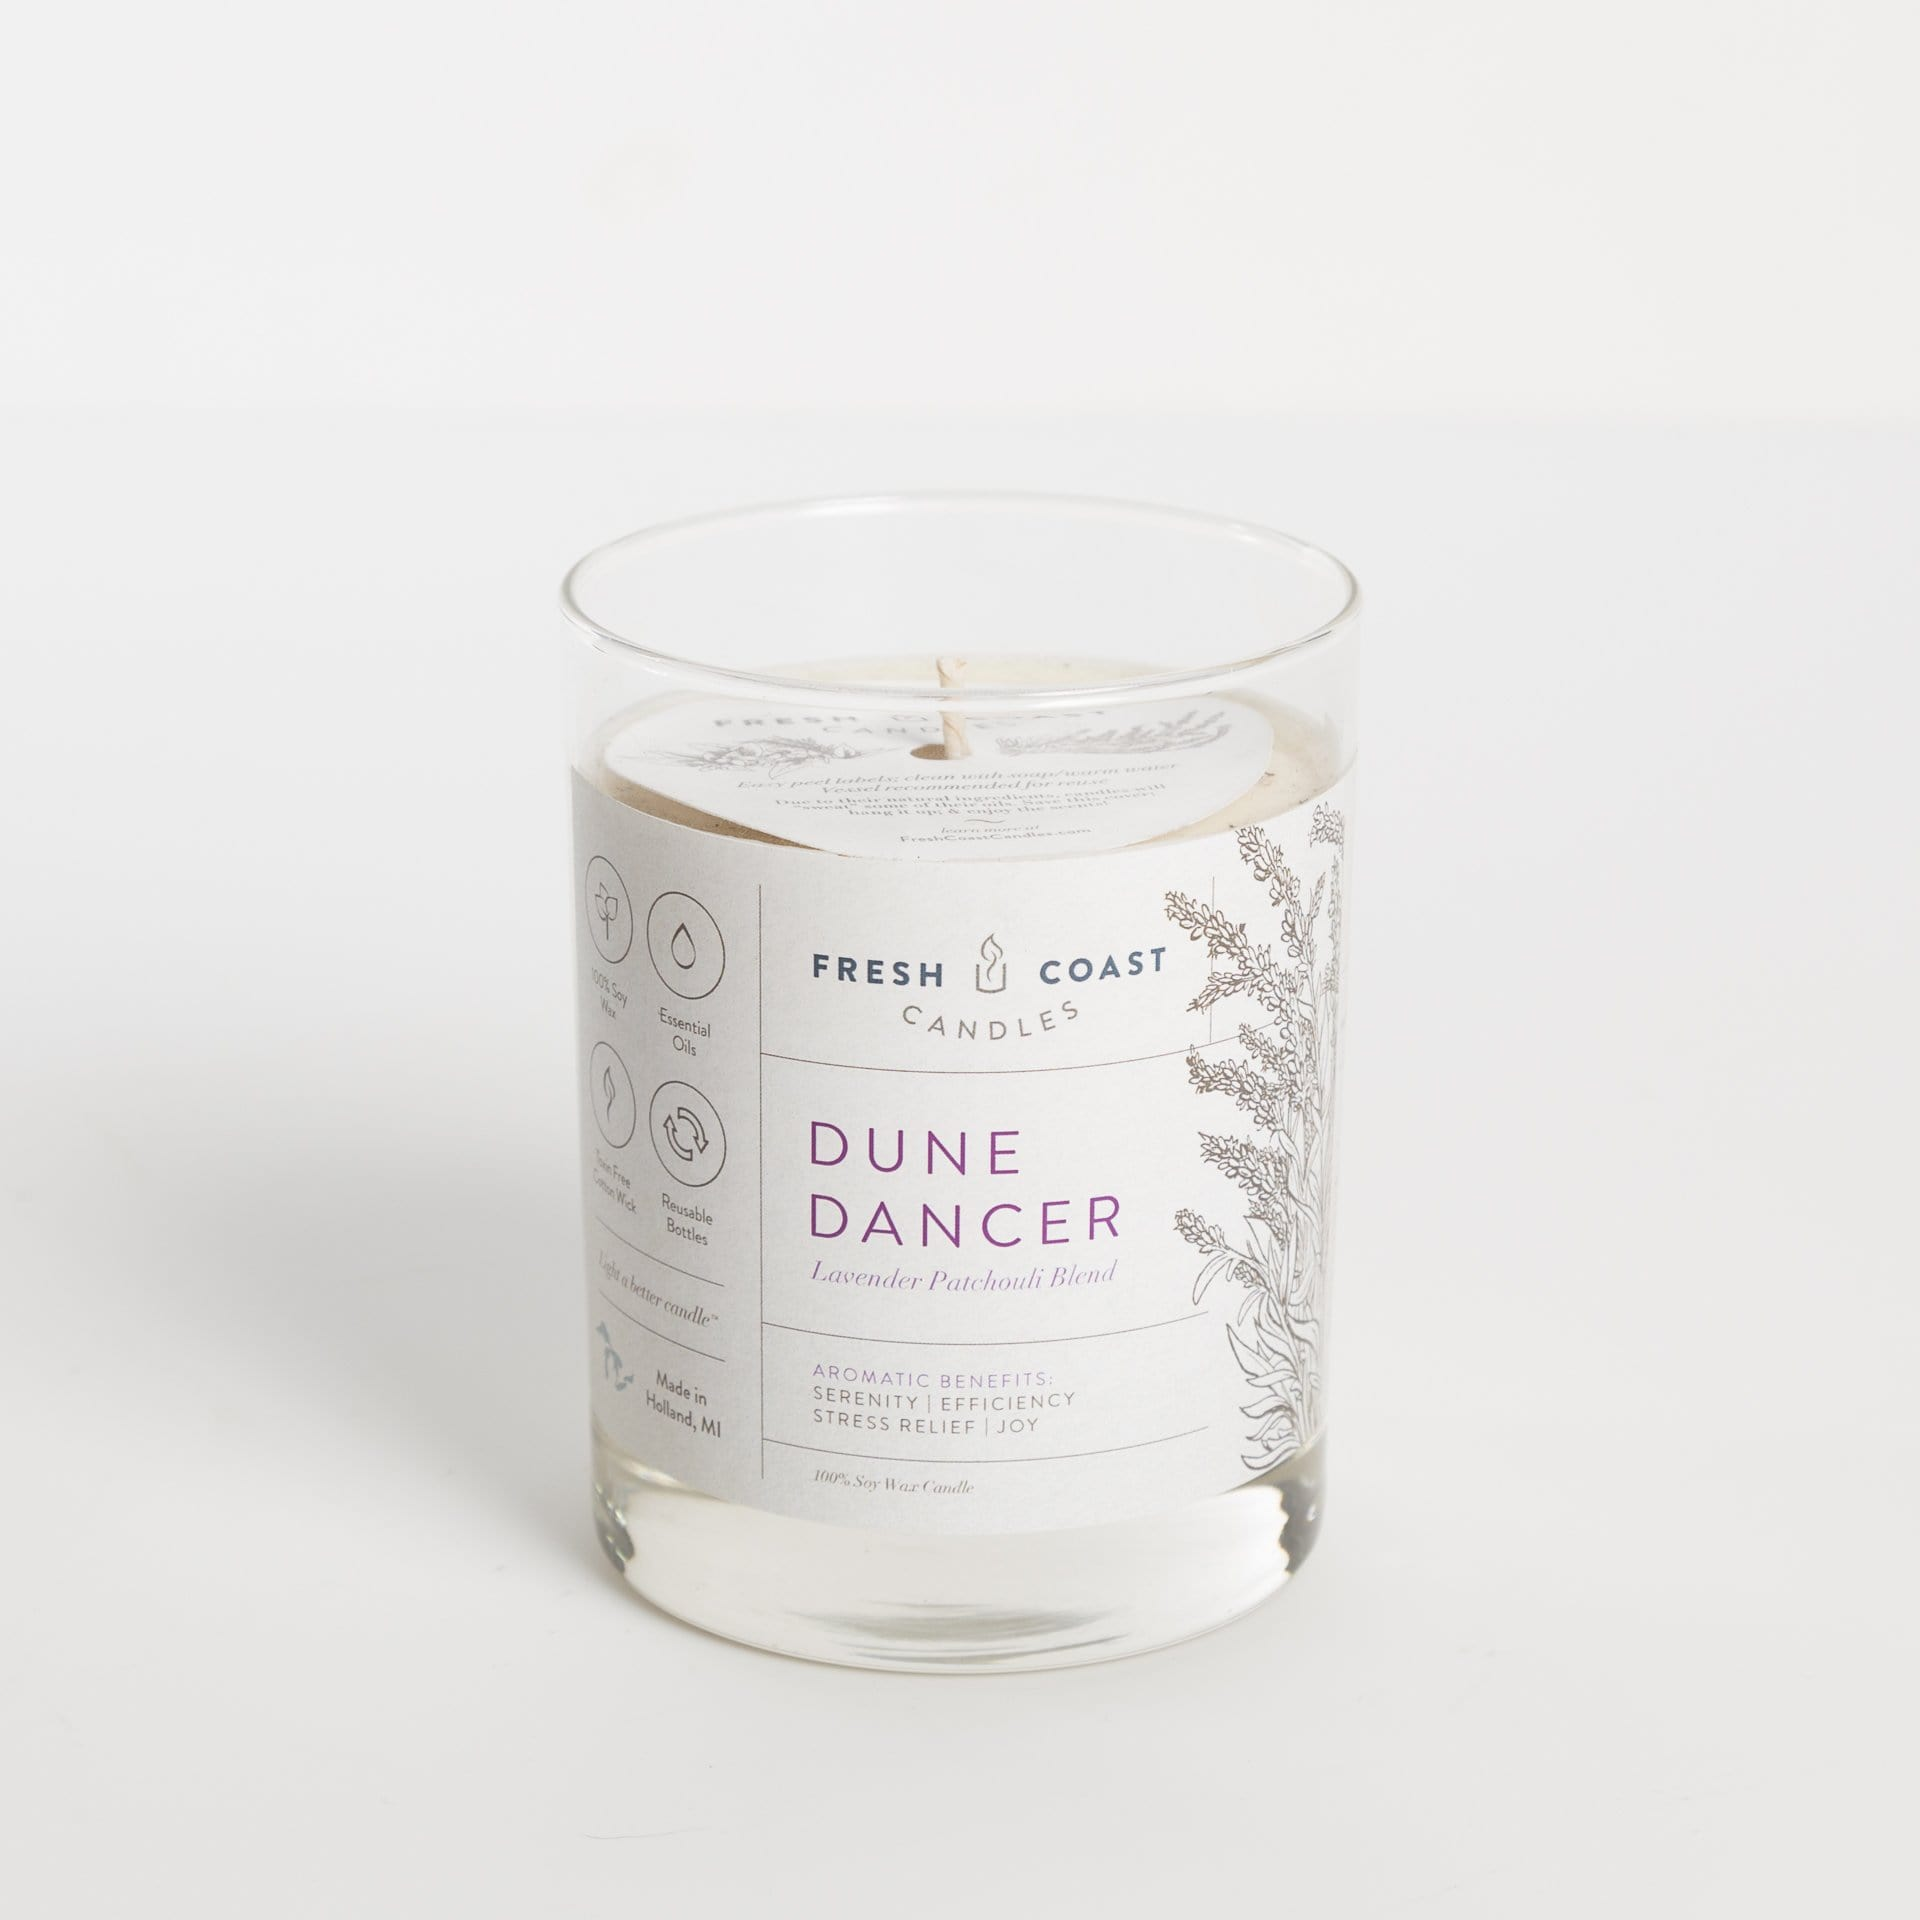 Dune Dancer Soy Candle - Urban Sprouts